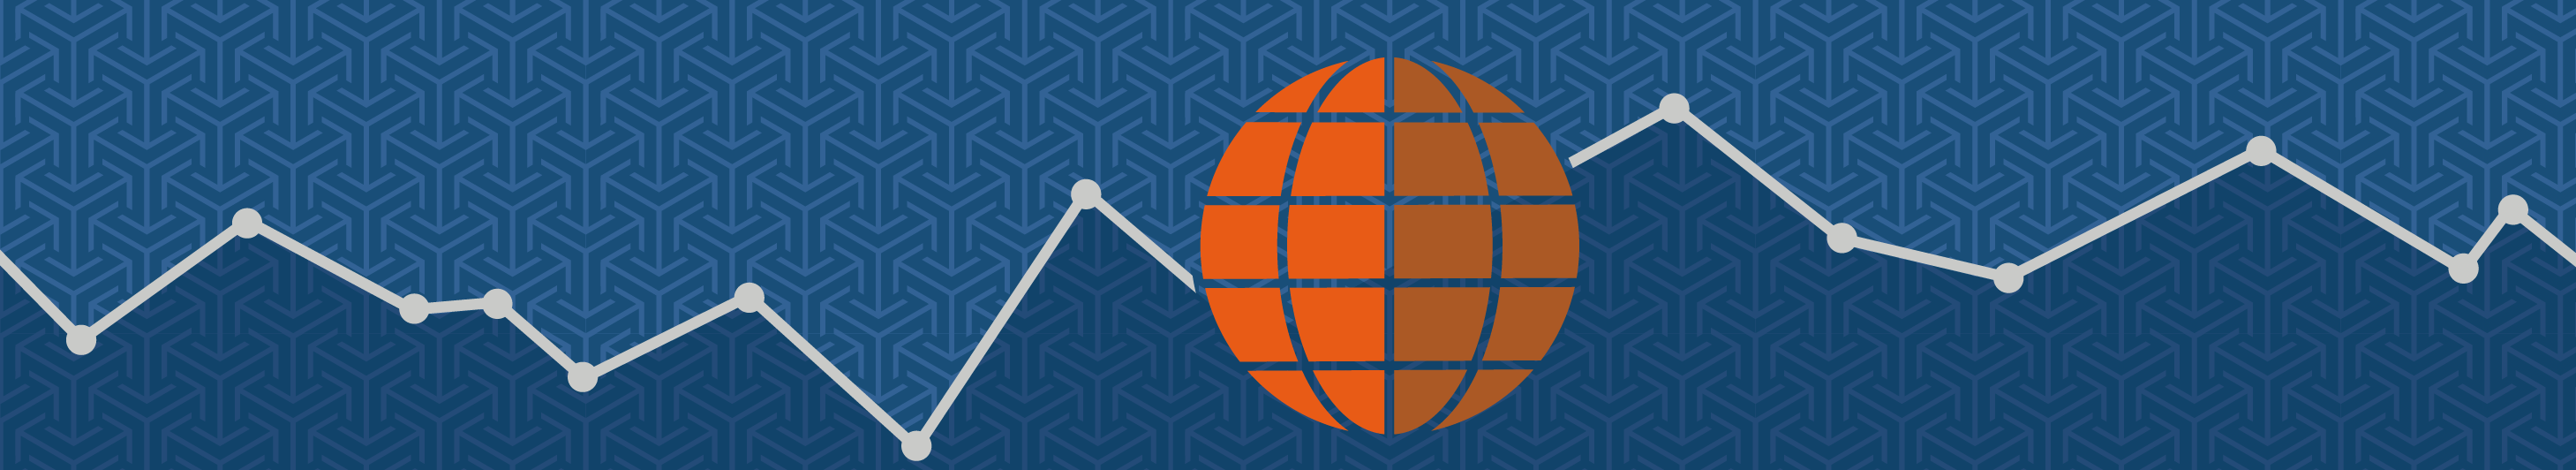 illustration of an orange globe on a blue background